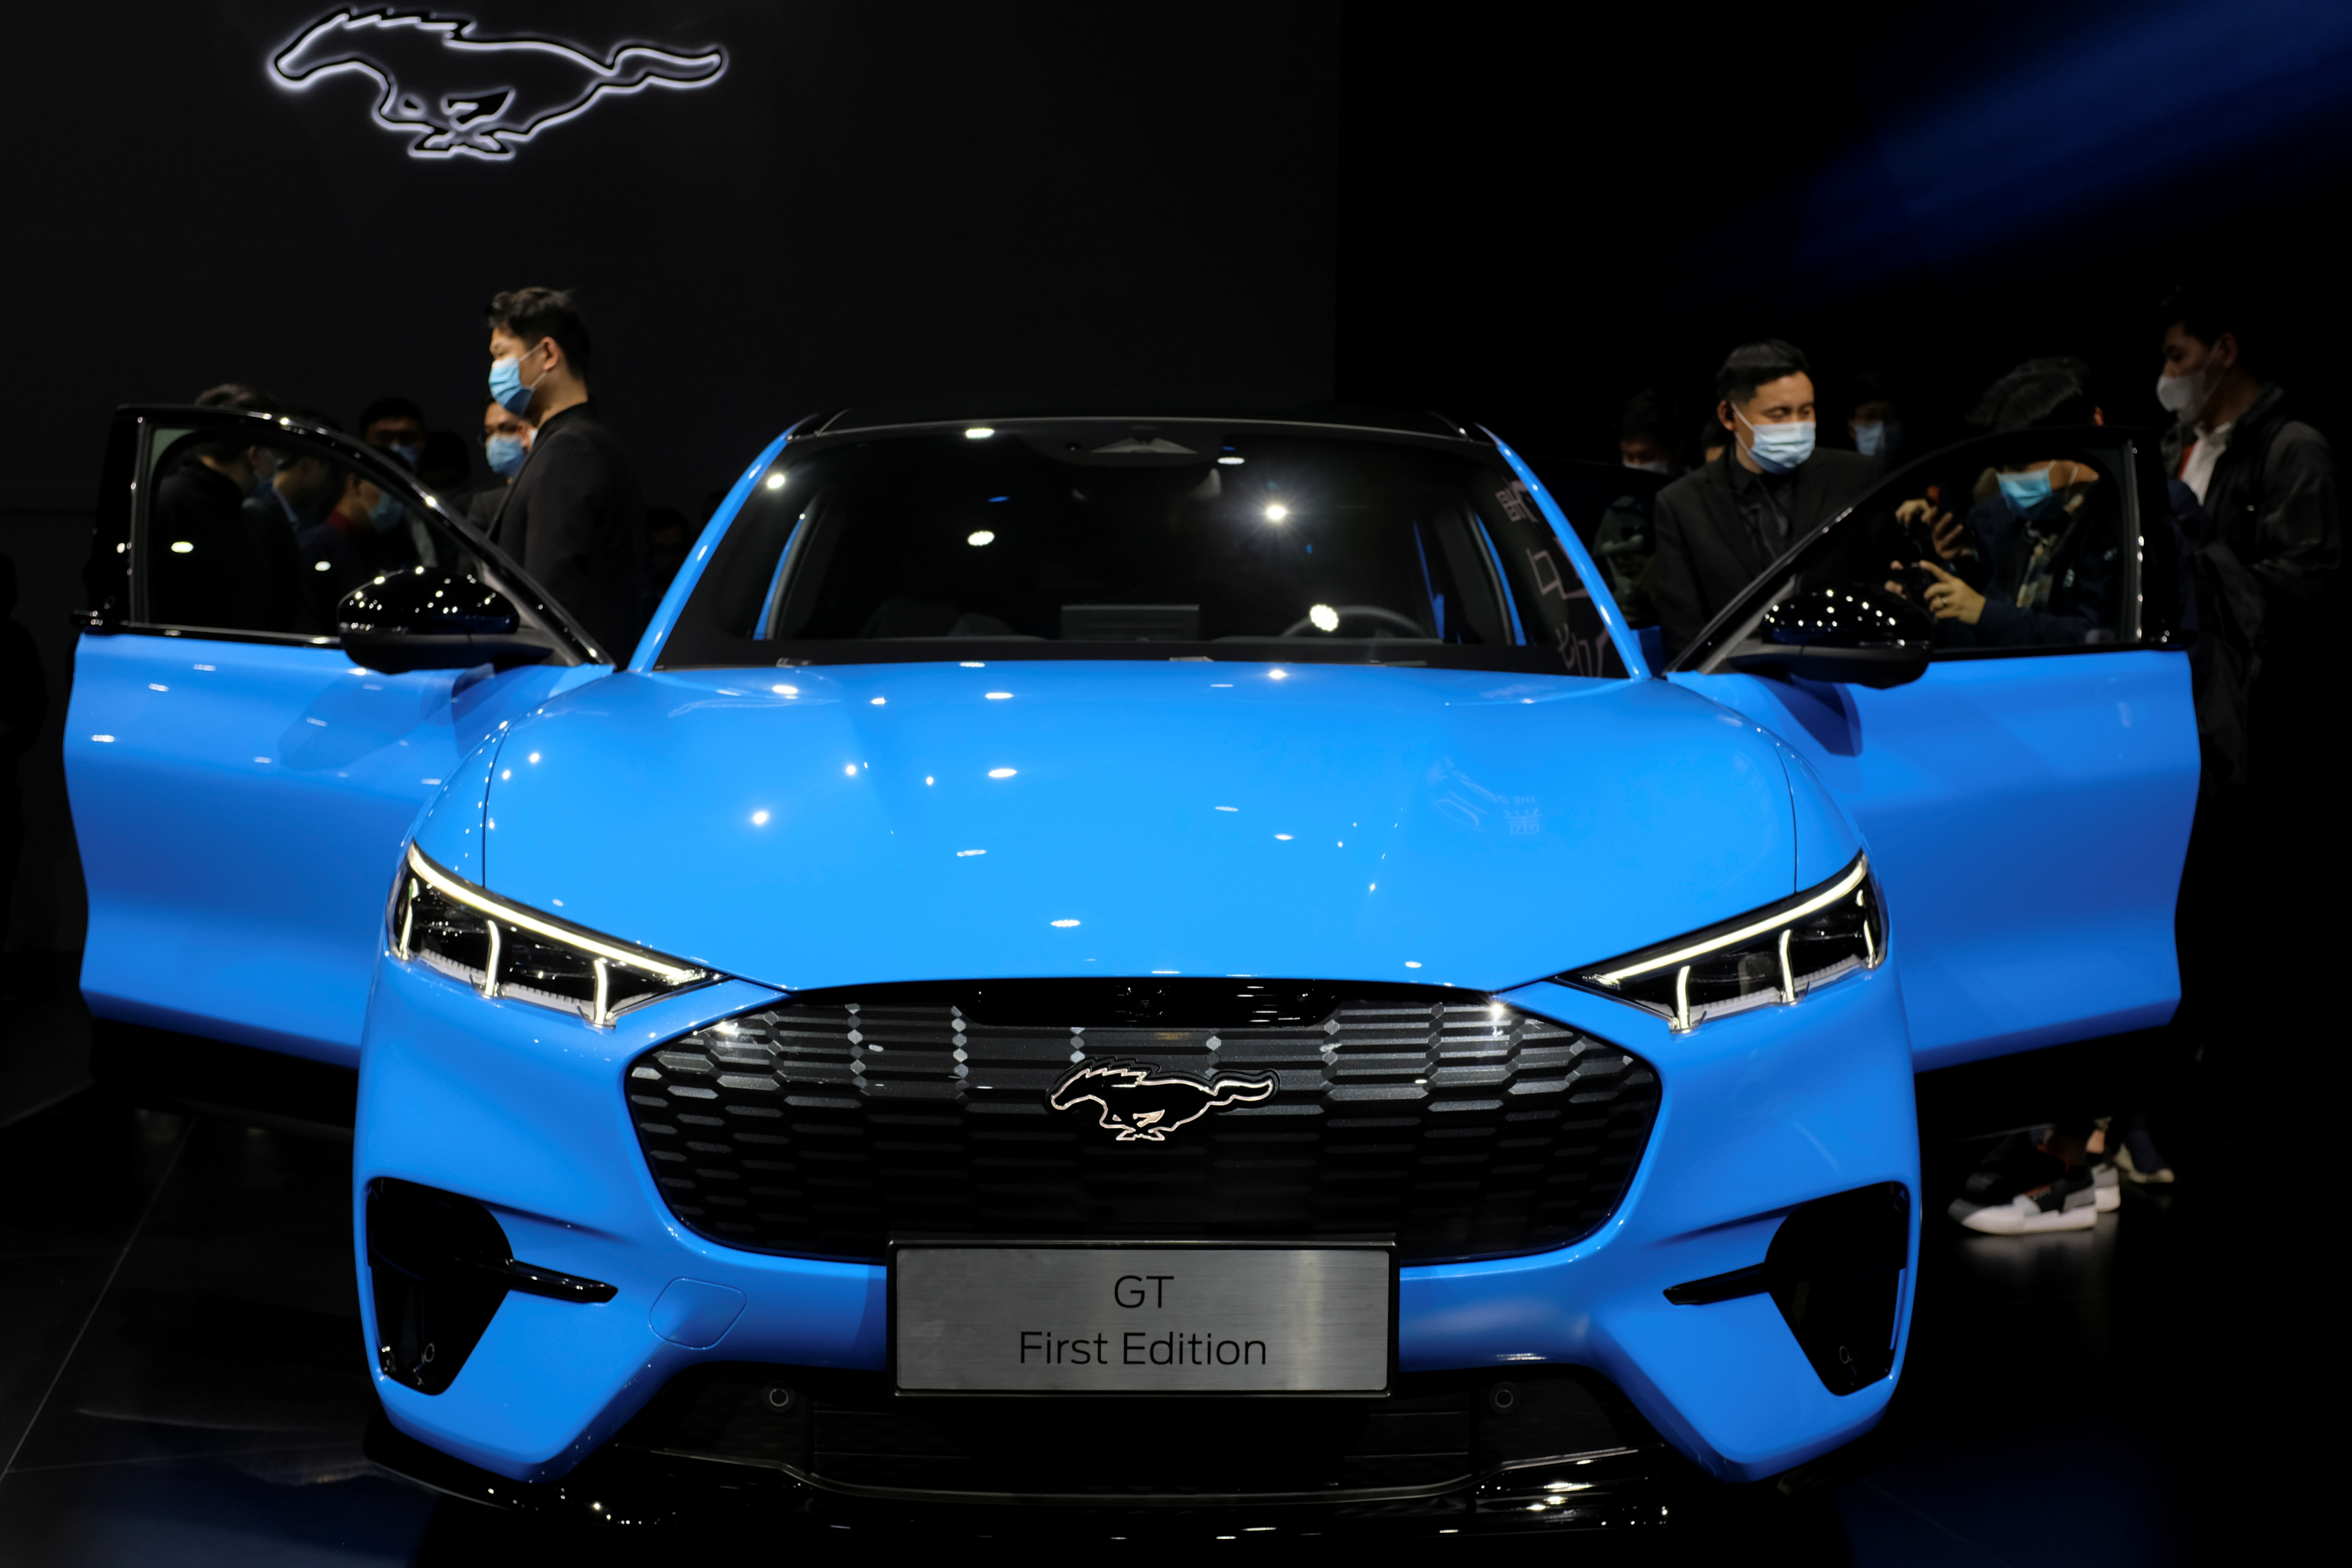 Visitors check on a Ford Mustang Mach-E electric vehicle displayed at a launch event in Shanghai, China April 13, 2021. REUTERS/Yilei Sun